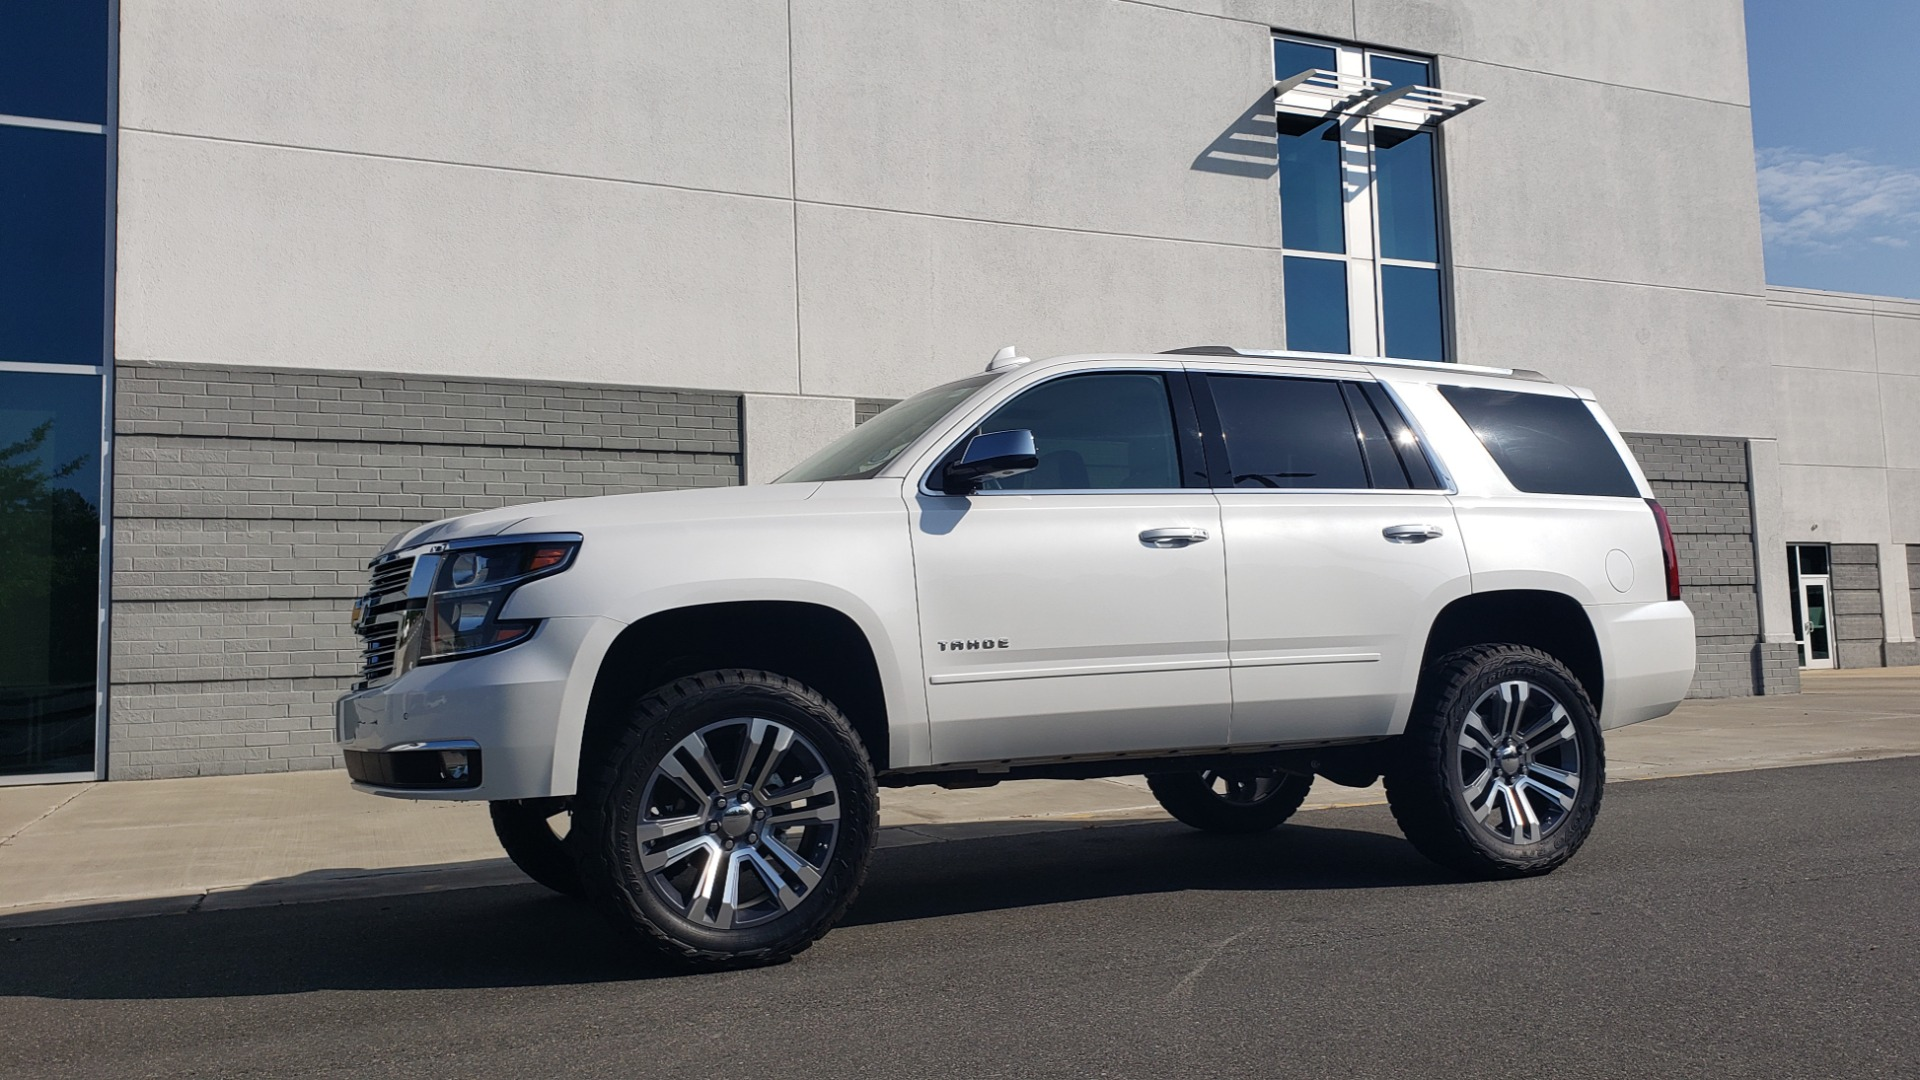 Used 2018 Chevrolet TAHOE PREMIER 4X4 / NAV / BOSE / SUNROOF / ENT SYS / 3-ROW / REARVIEW for sale $55,995 at Formula Imports in Charlotte NC 28227 3